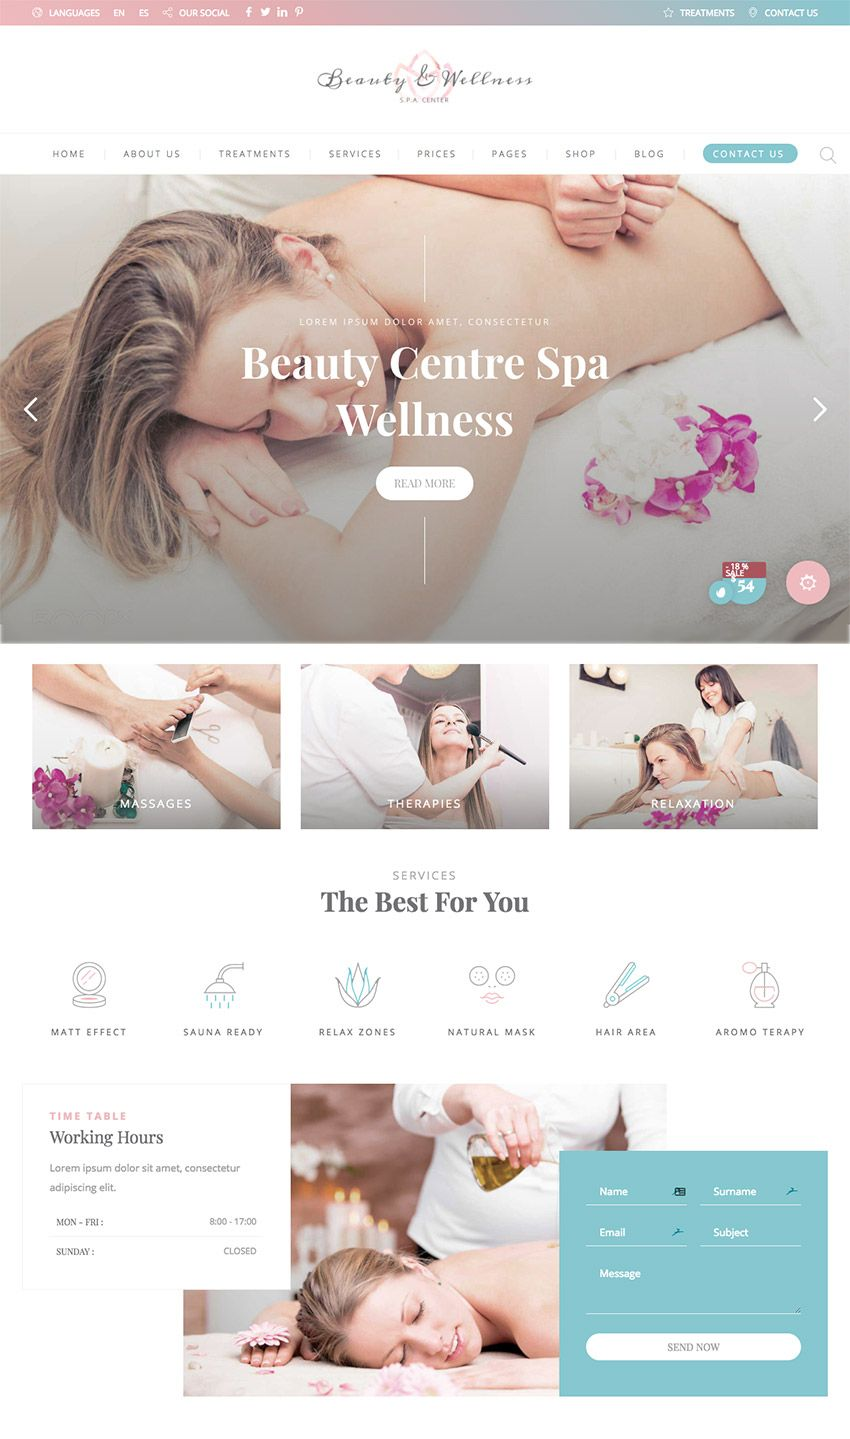 How to Make Beautiful Spa & Beauty Salon Websites With WordPress